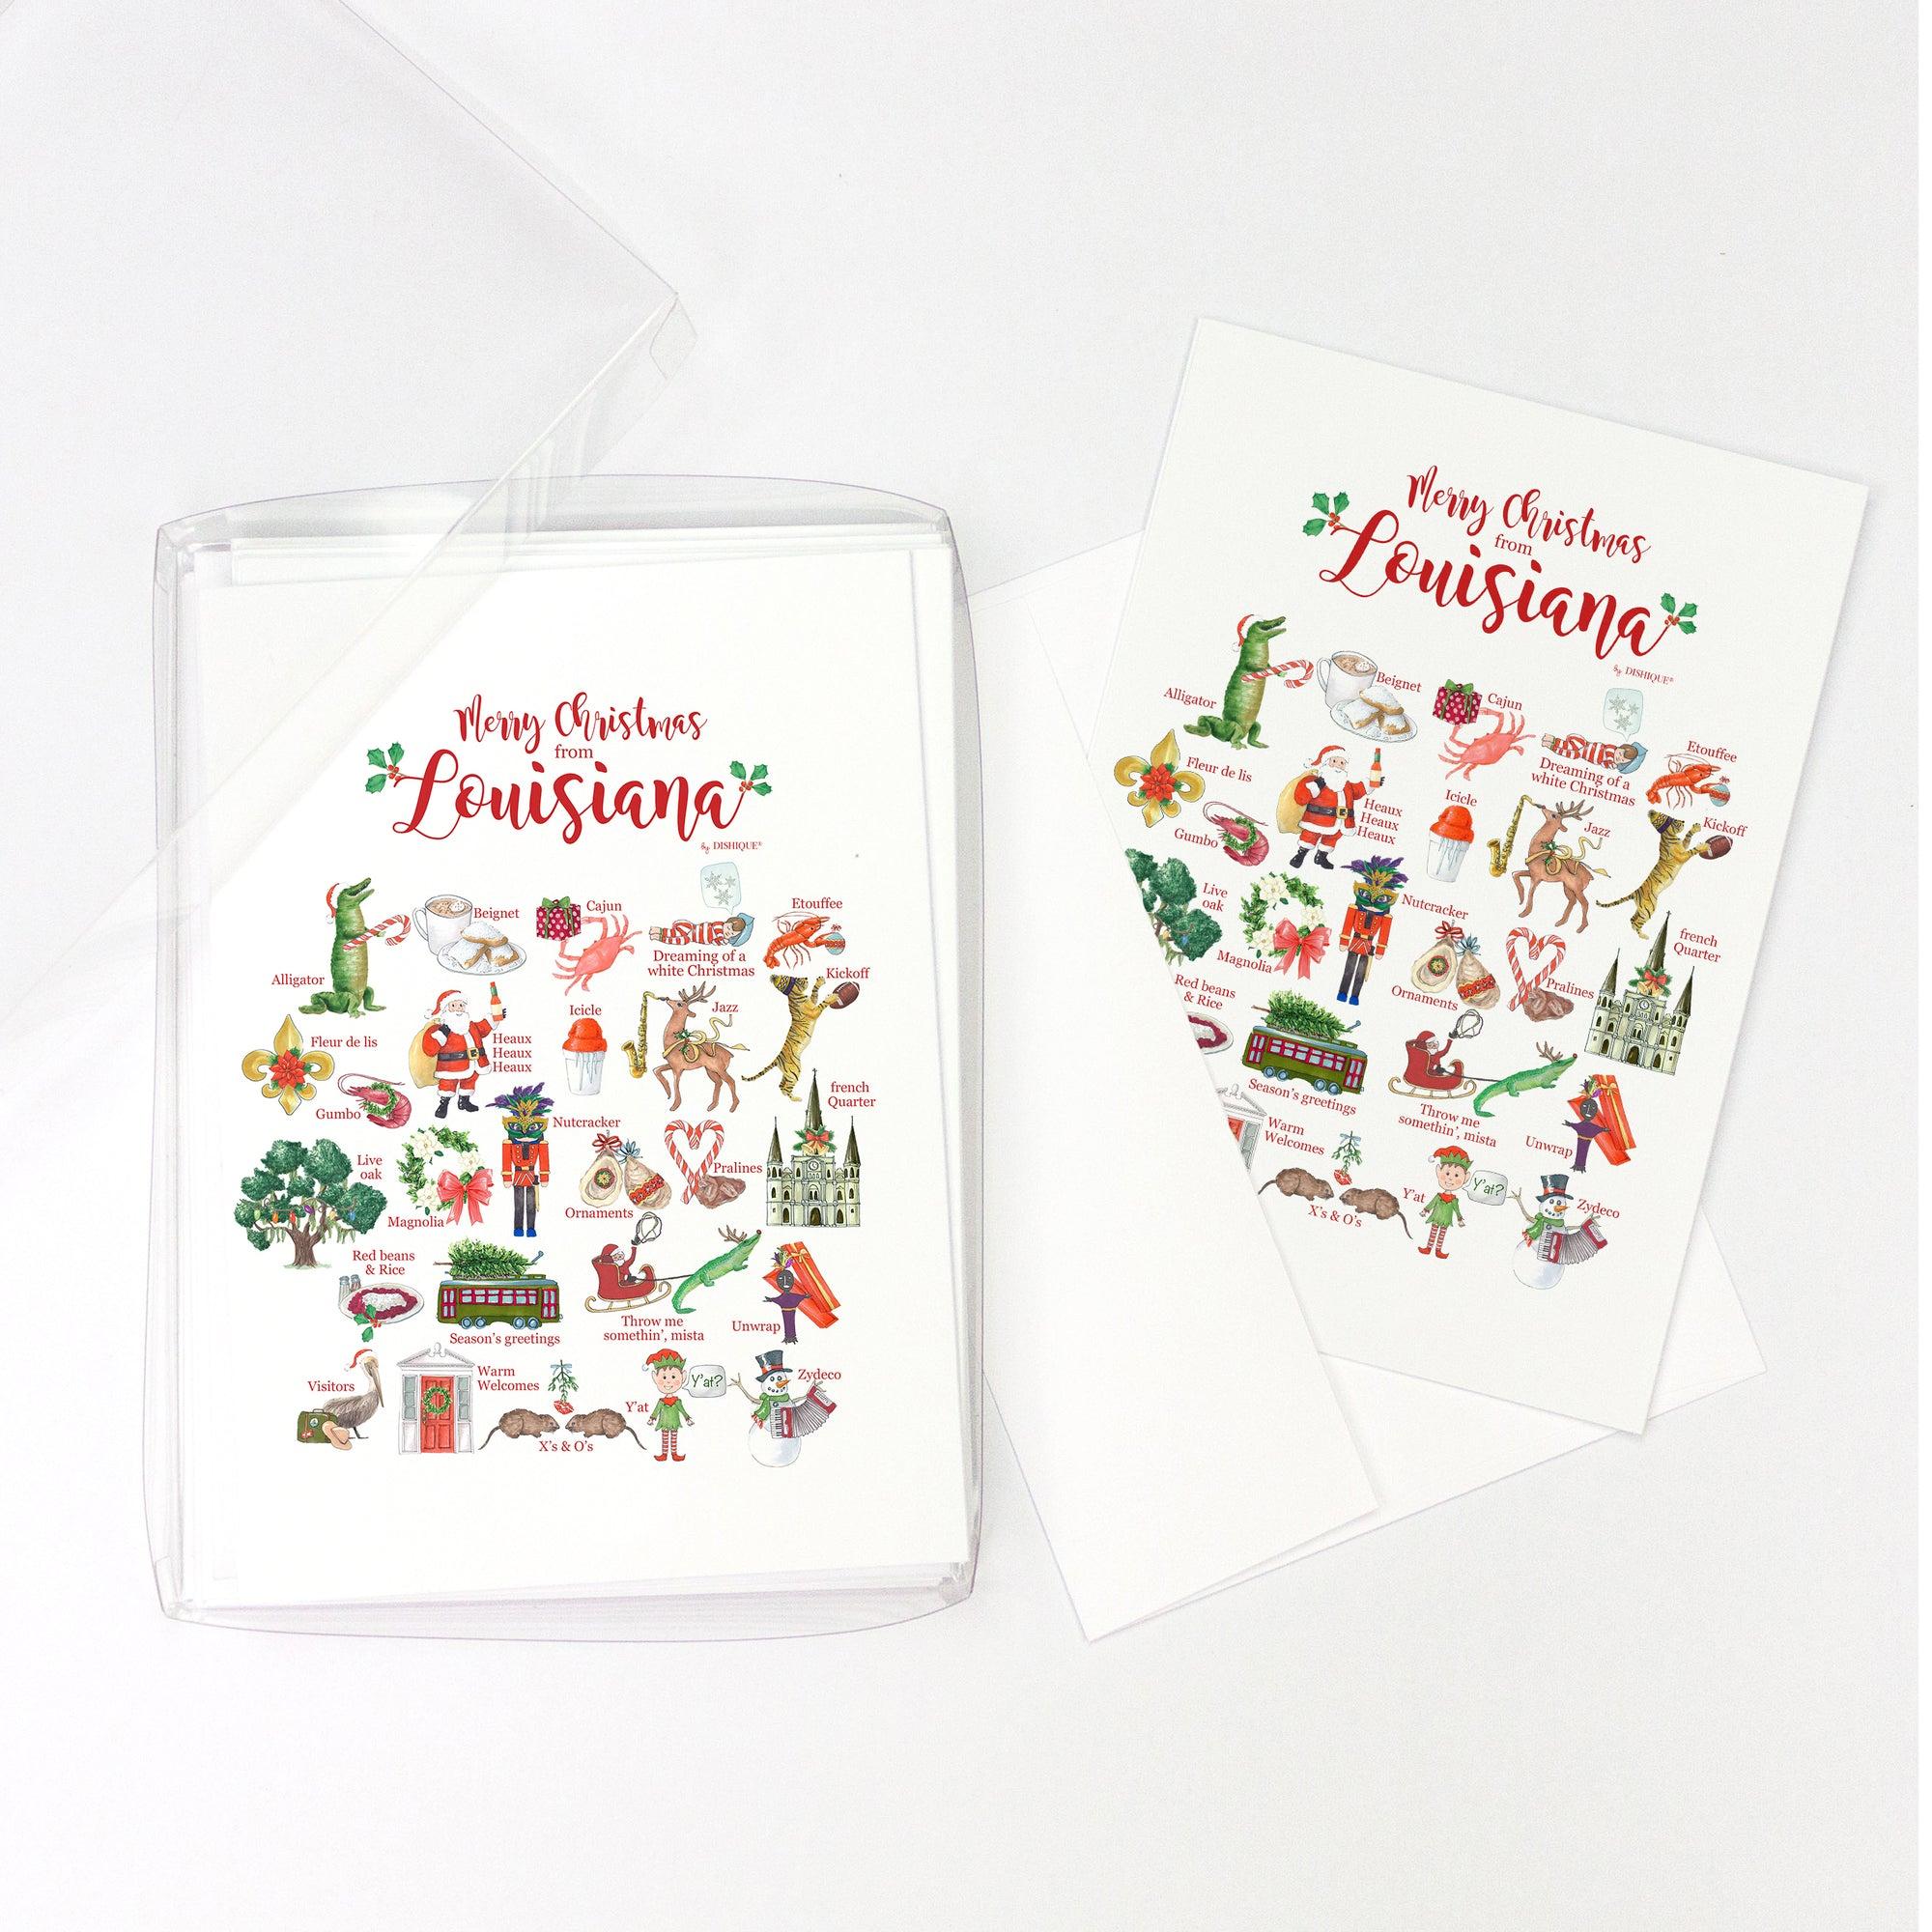 Merry Christmas from Louisiana Alphabet Greeting Cards, Pack of 10 cards (blank inside)